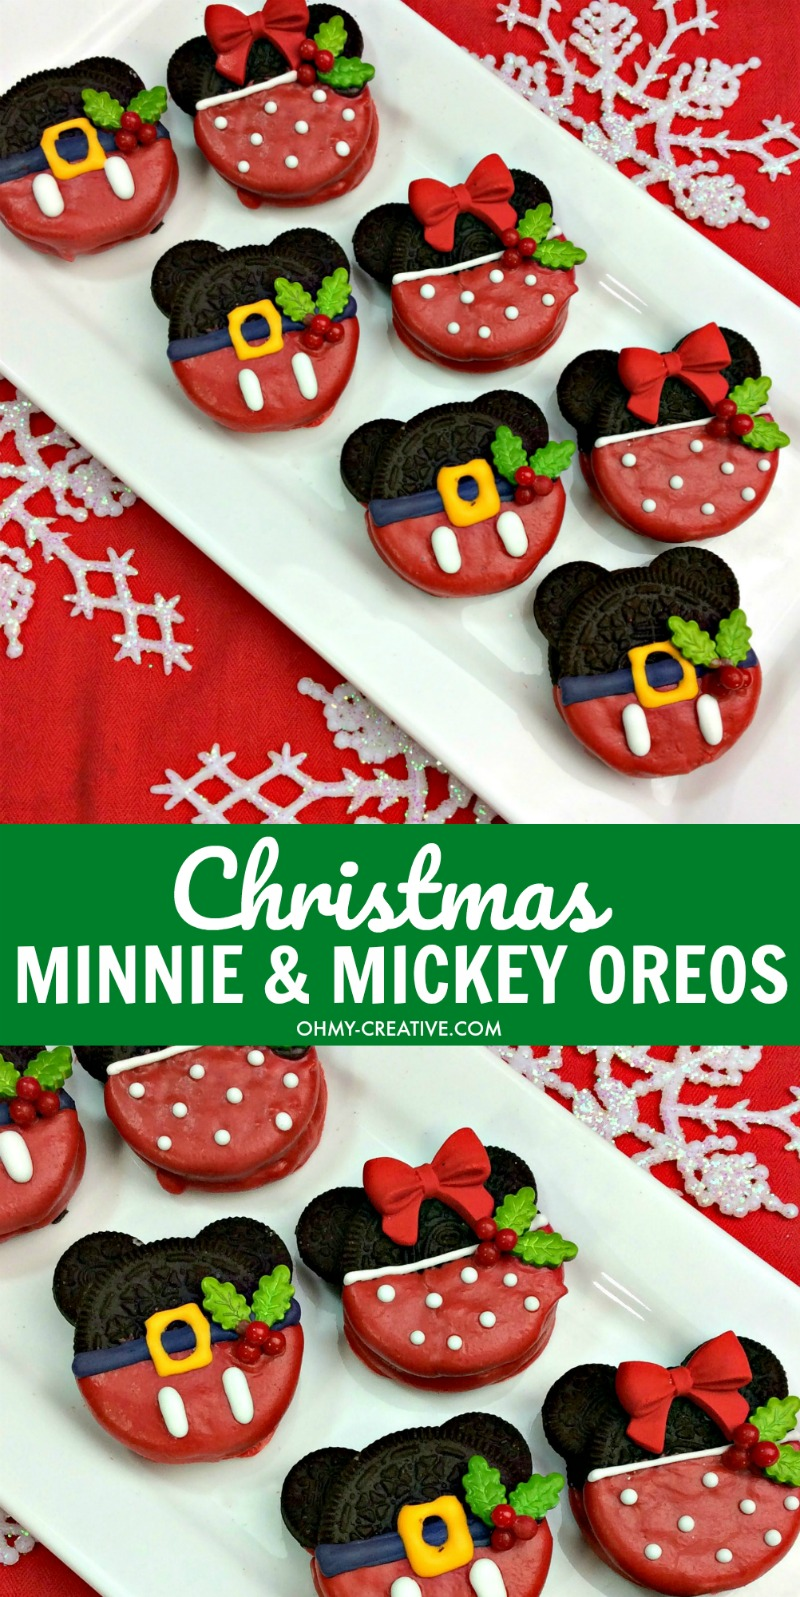 Christmas Minnie and Mickey Mouse Oreos | OHMY-CREATIVE.COM | mickey mouse cookies | Minnie Mouse Cookies | Mickey Mouse Snacks | Mickey Mouse Party Ideas | Mickey Mouse Theme Party | Oreo Cookies | Disney Cookies | Christmas Cookies | Chocolate Dipped Oreos